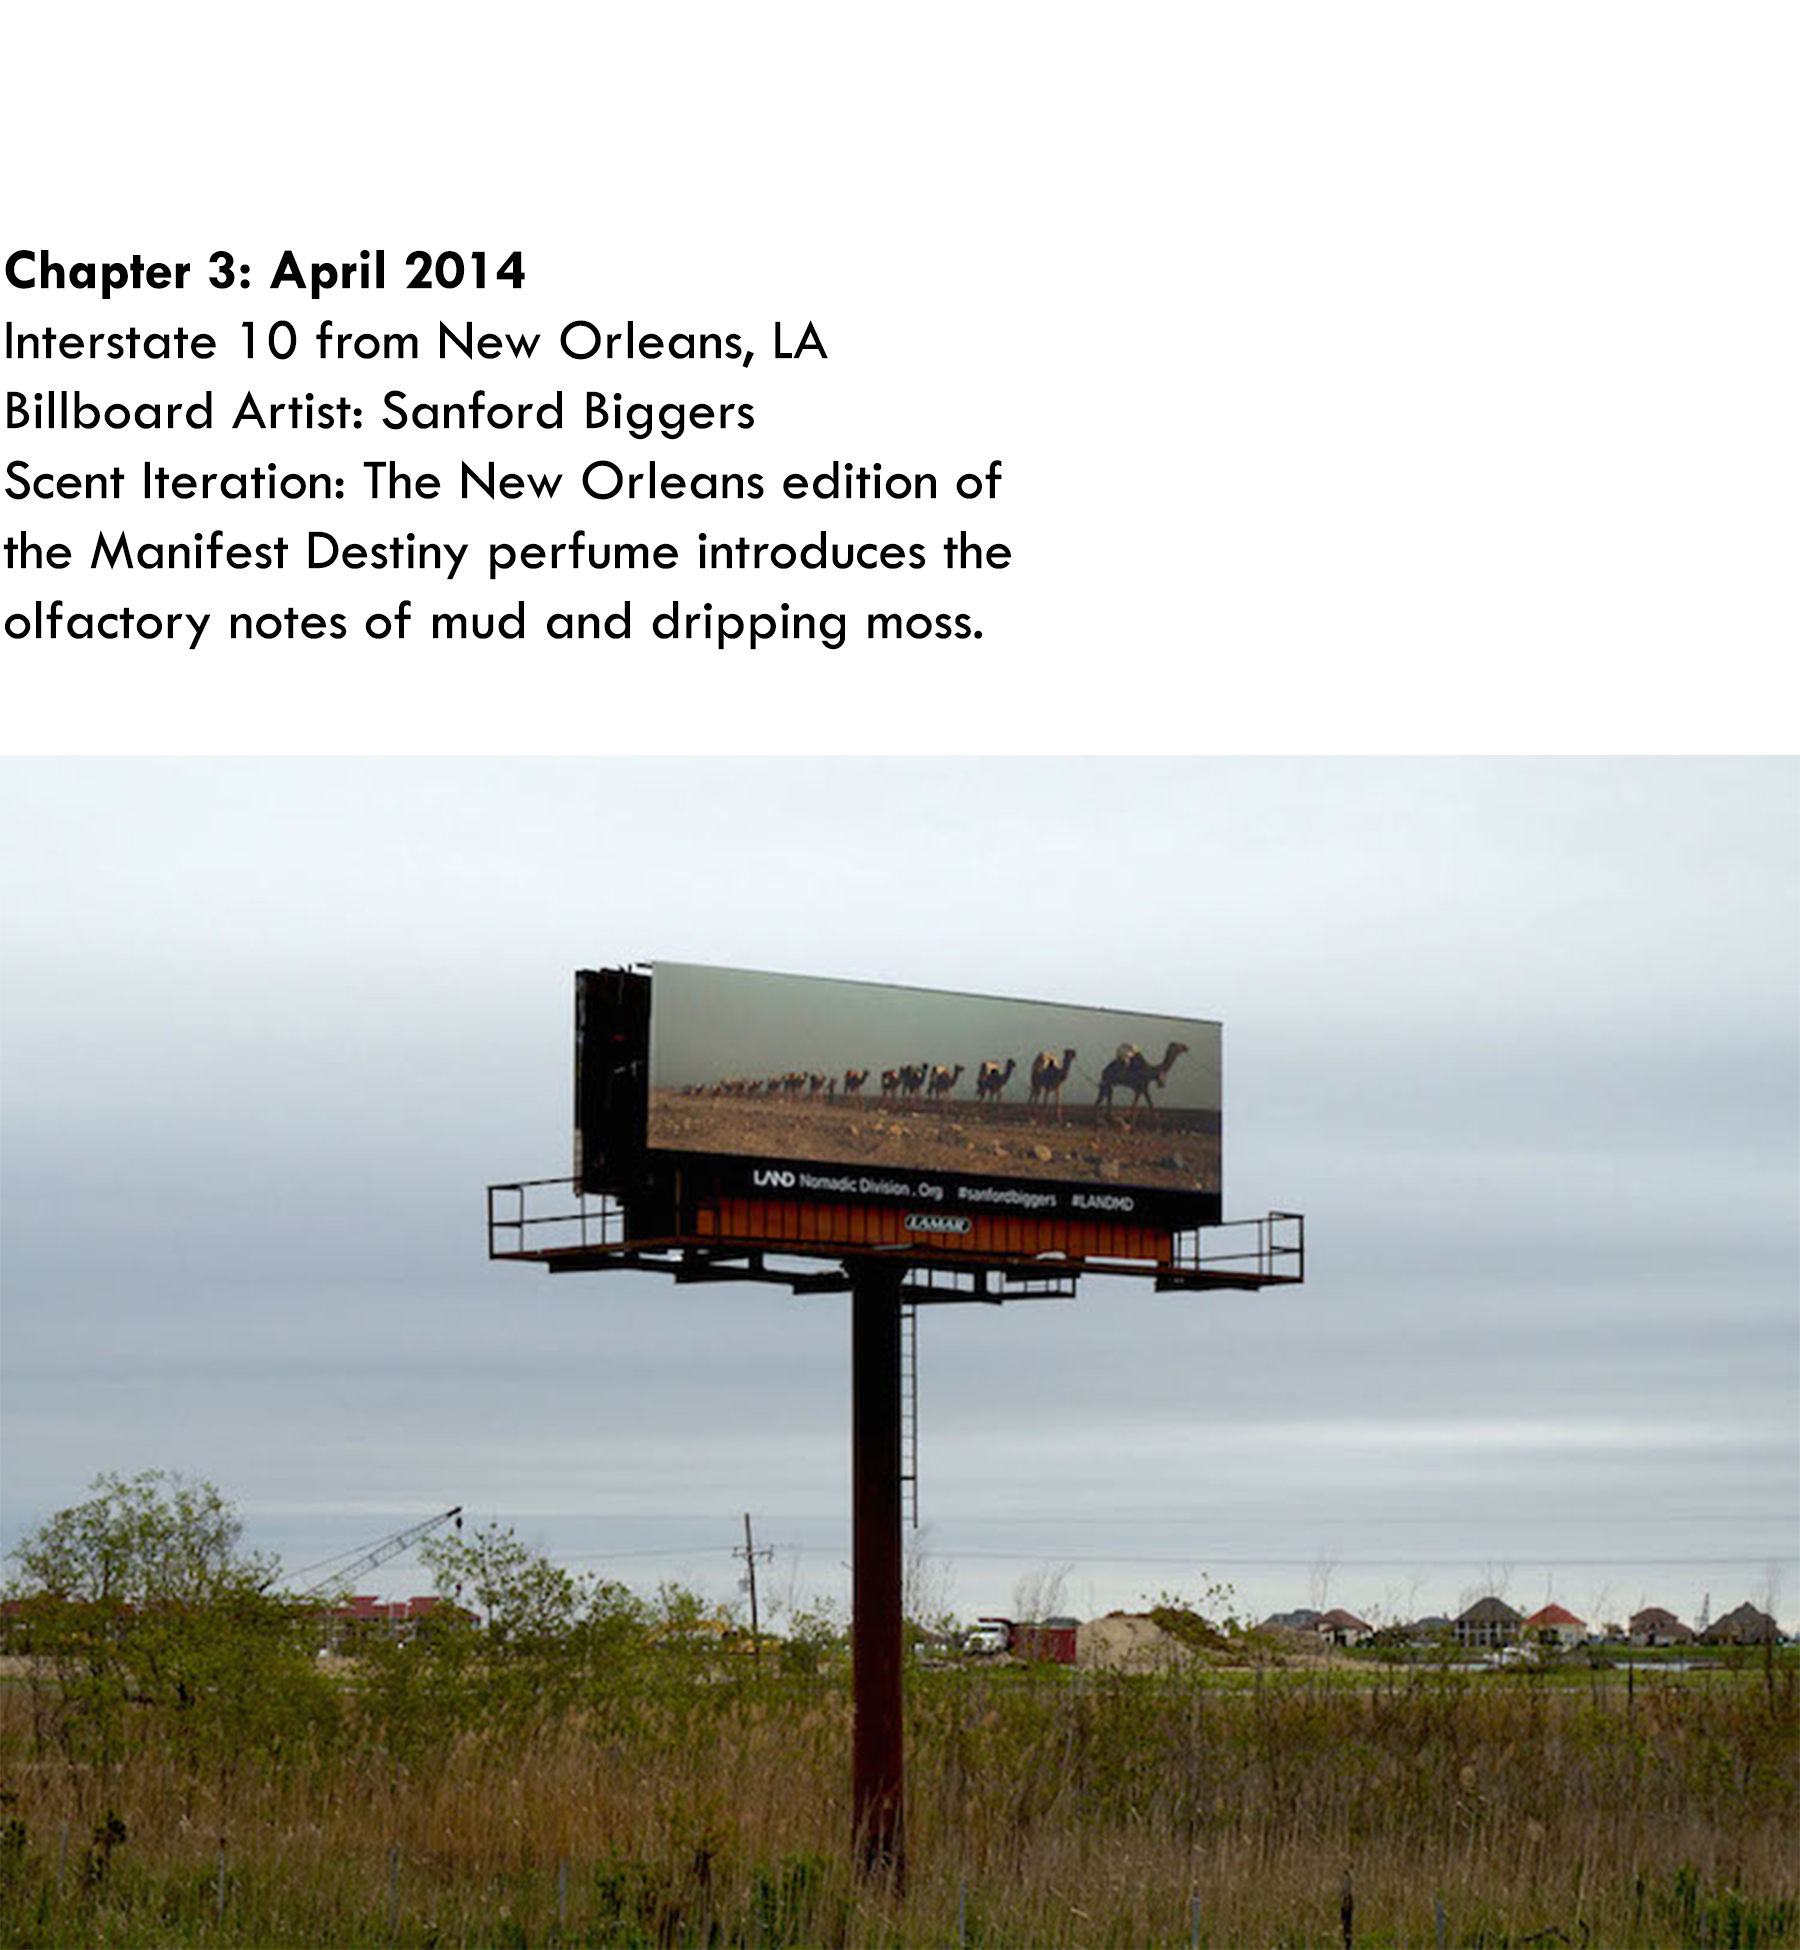 Chapter 3: April 2014, Sanford Biggers, Interstate 10 from New Orleans, LA, Scent Iteration: Mud & Dripping Moss